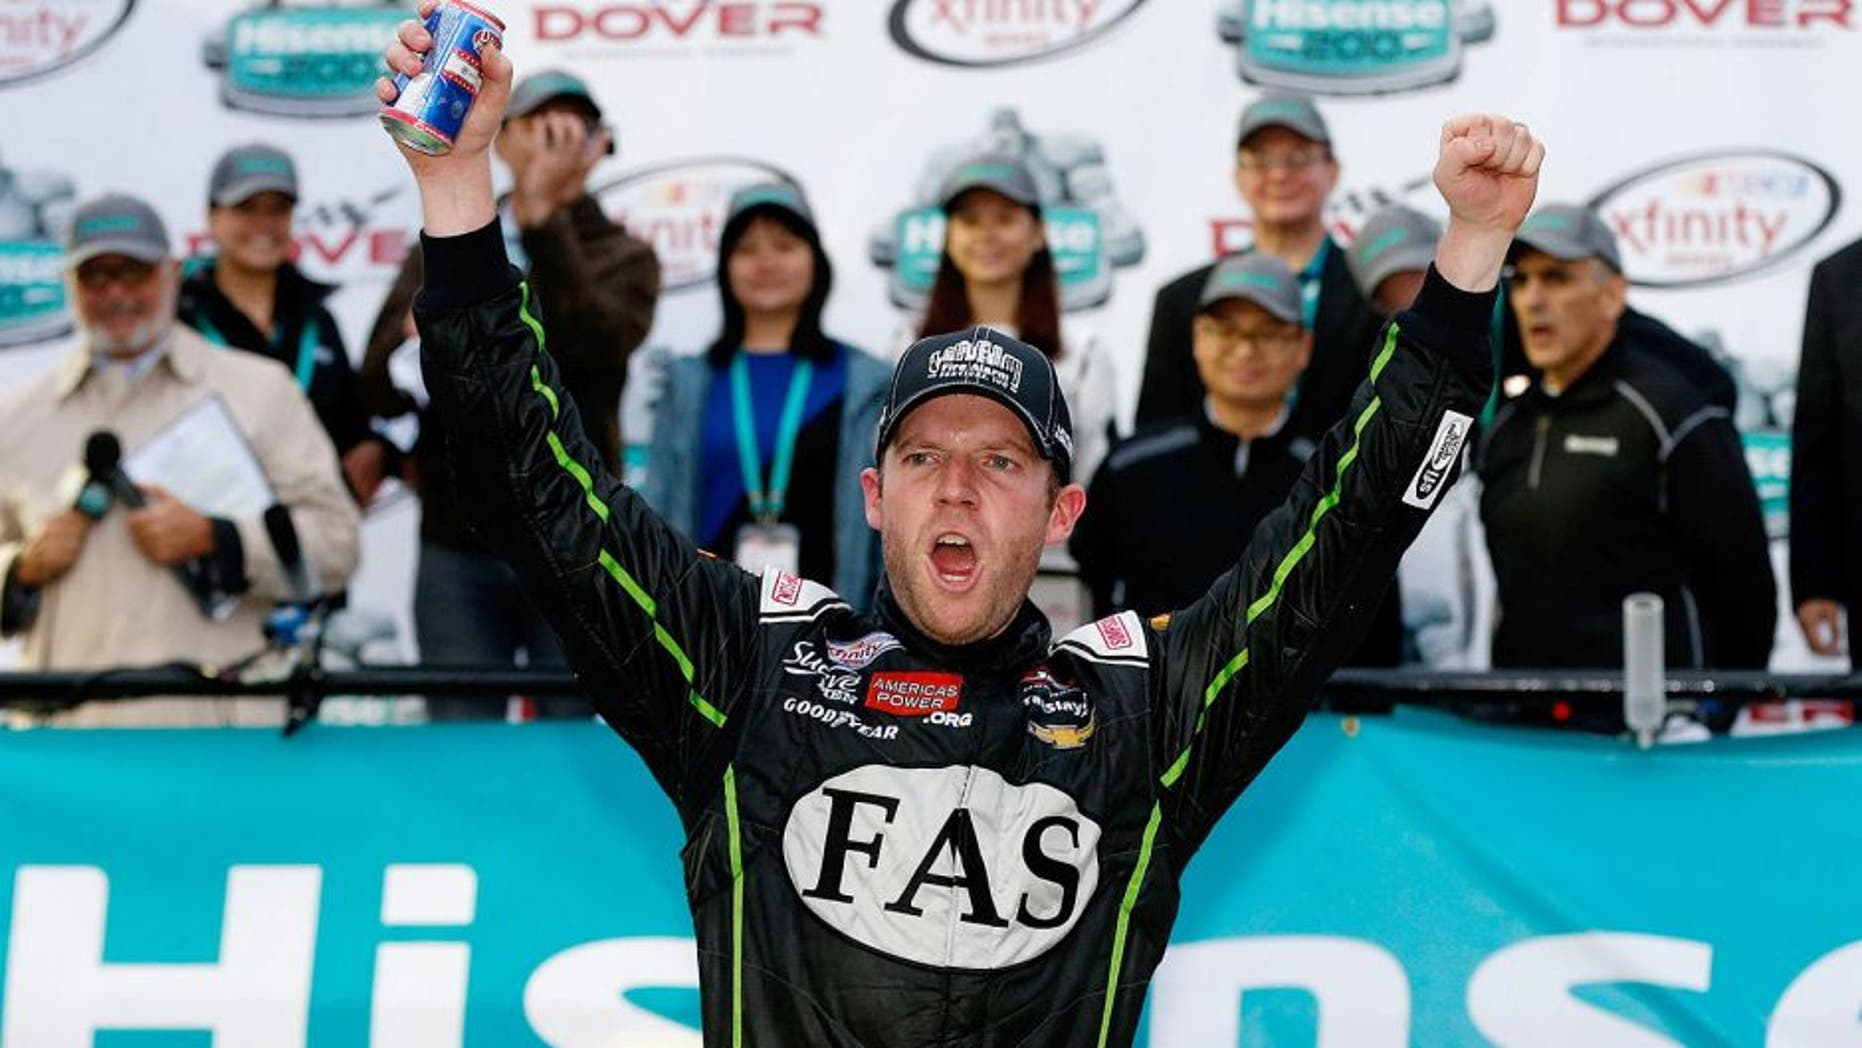 DOVER, DE - OCTOBER 03: Regan Smith, driver of the #7 Fire Alarm Services Chevrolet, celebrates in Victory LanVictory Laneafter winning the NASCAR XFINITY Series Hisense 200 at Dover International Speedway on October 3, 2015 in Dover, Delaware. (Photo by Brian Lawdermilk/Getty Images)